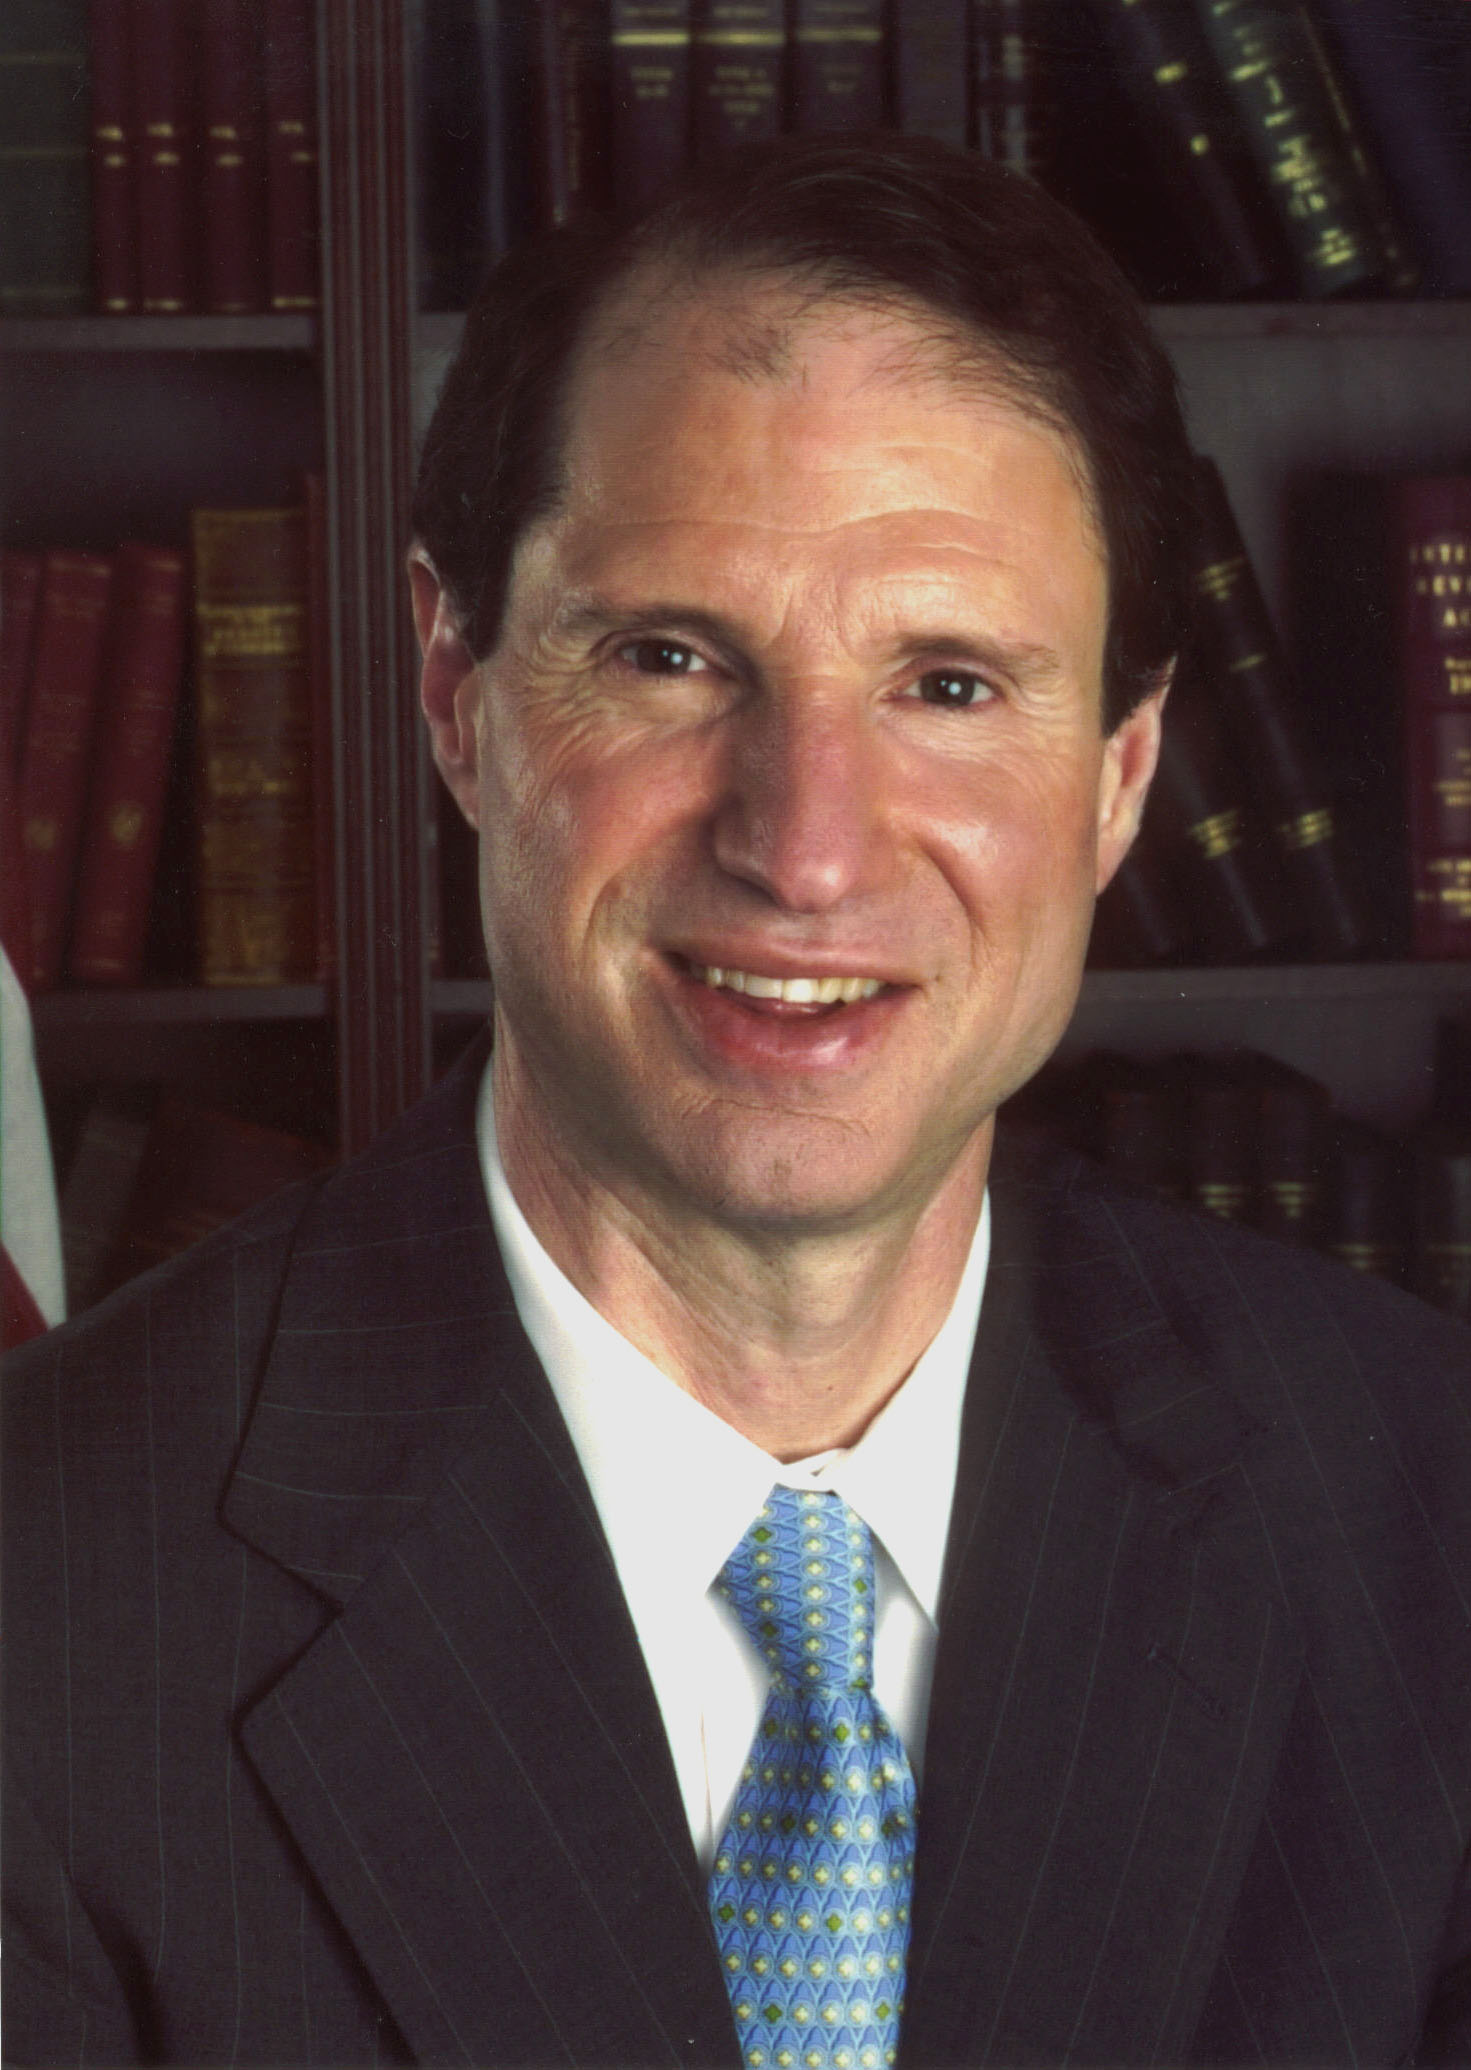 Ron Wyden's quote #3